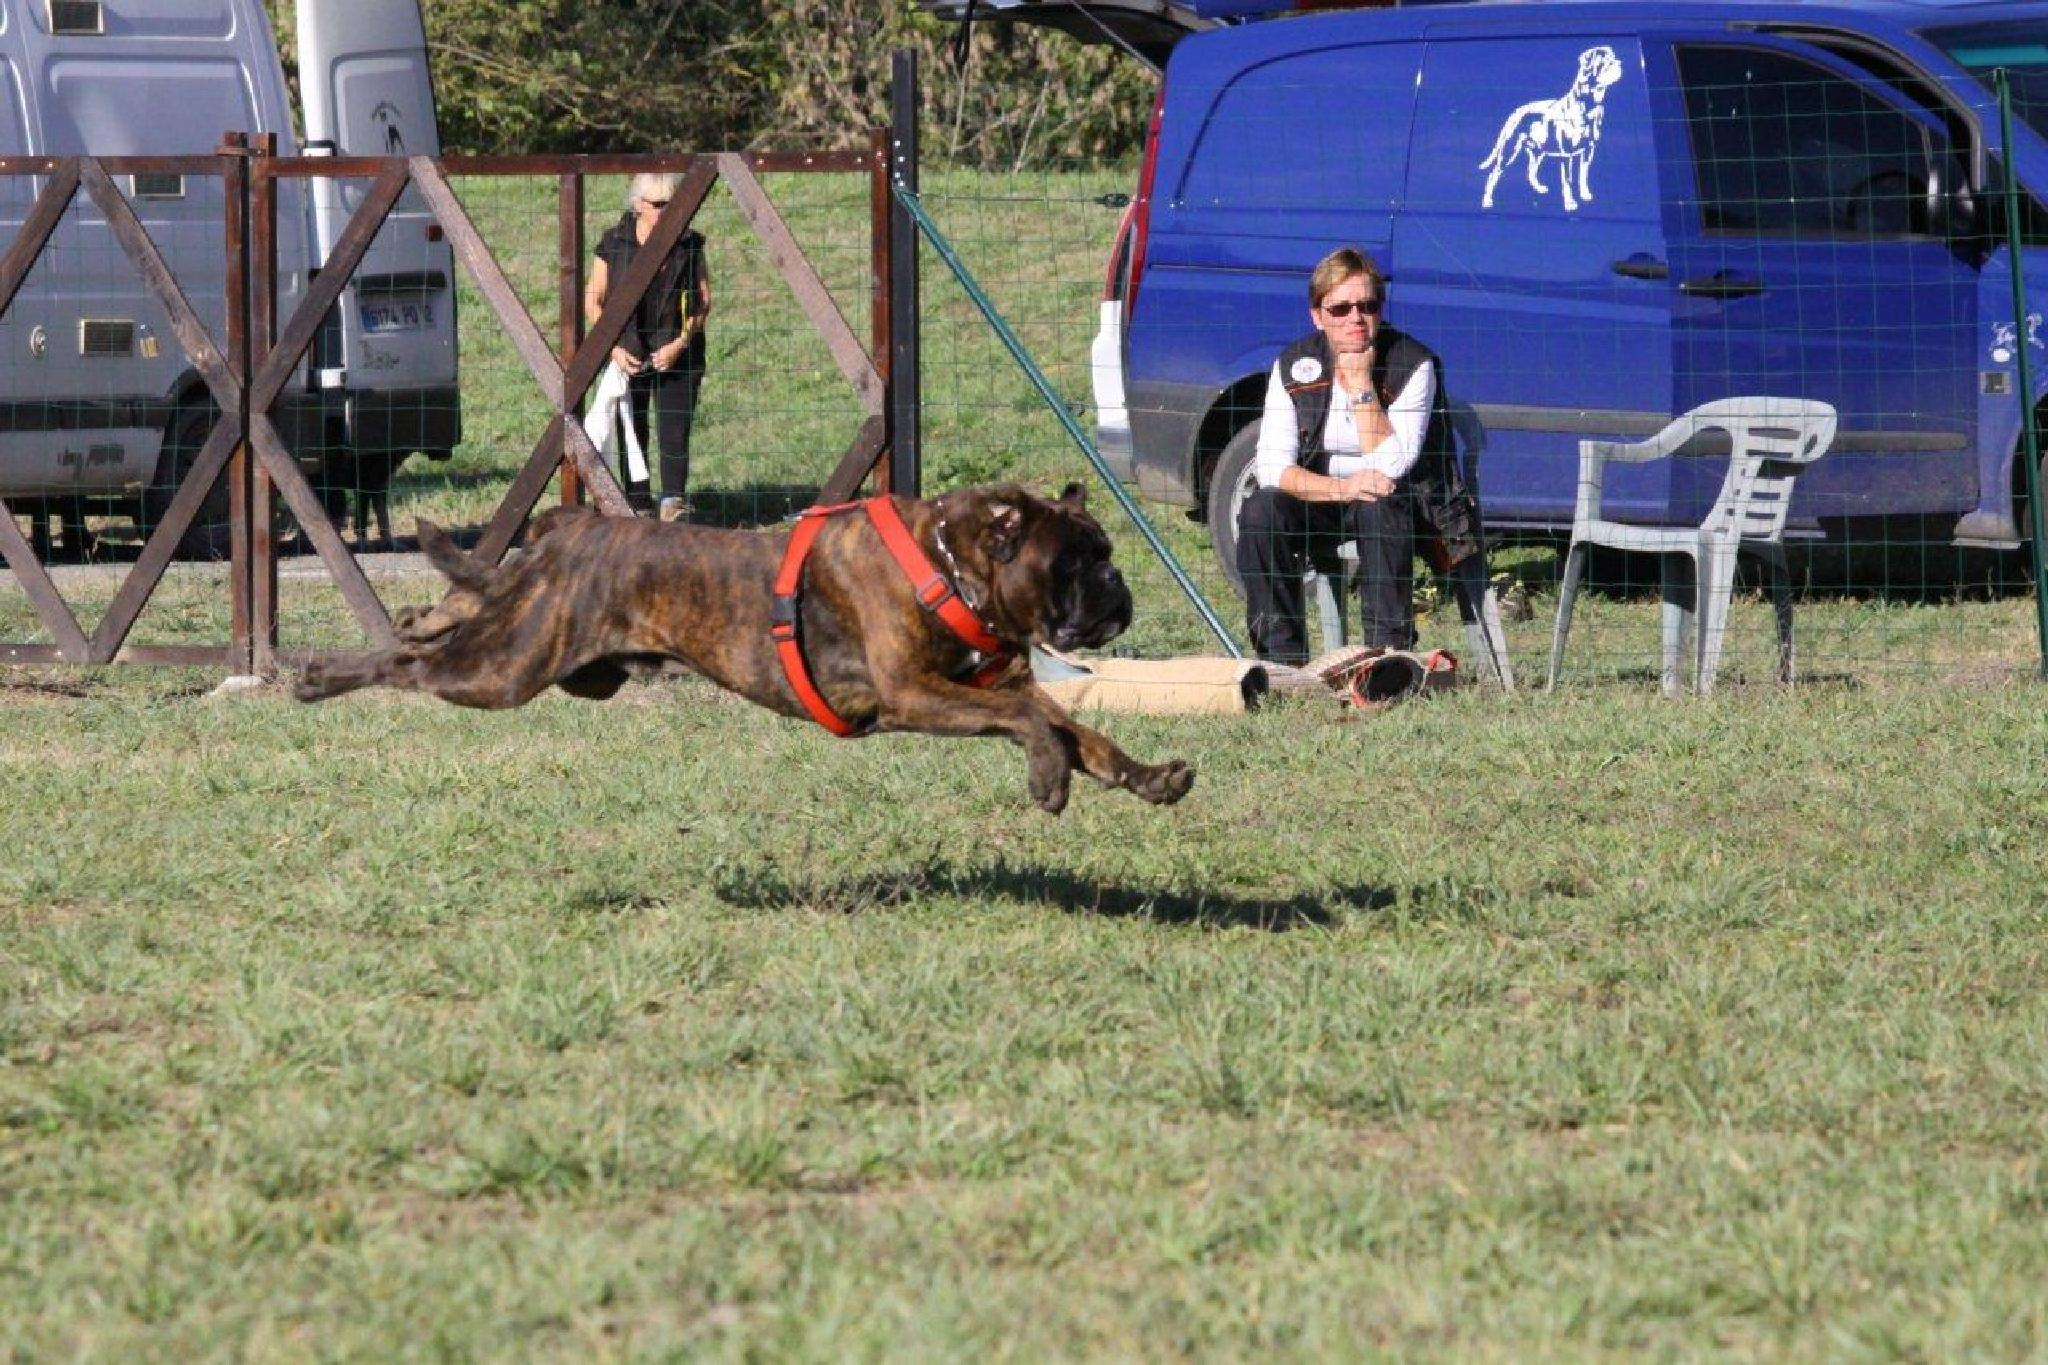 Concours, sport canin by elisaboxer2014